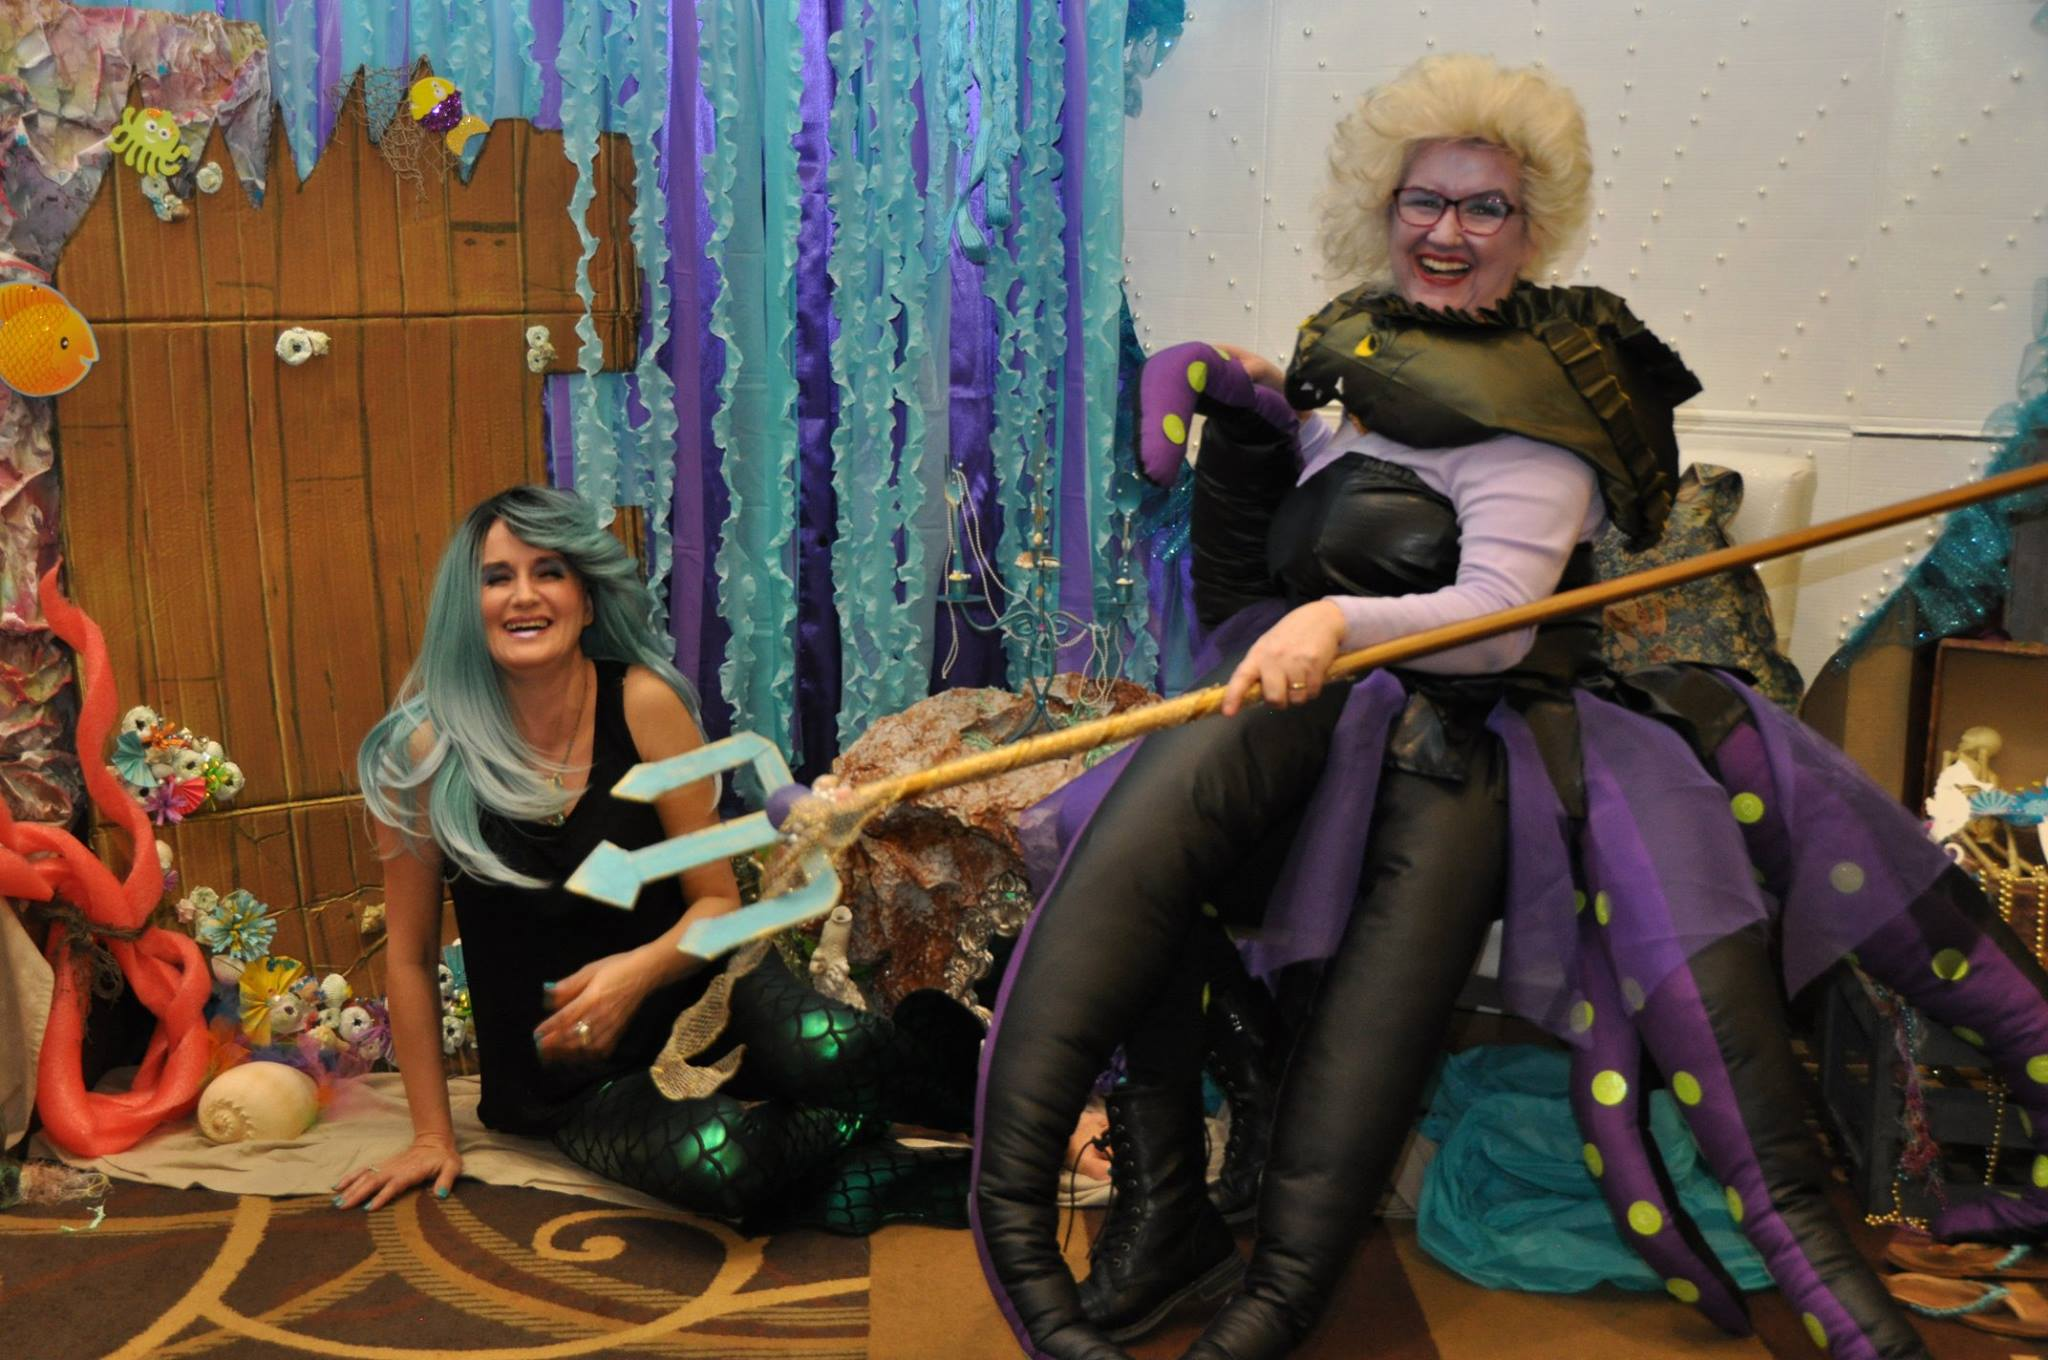 Ursula and the mermaid